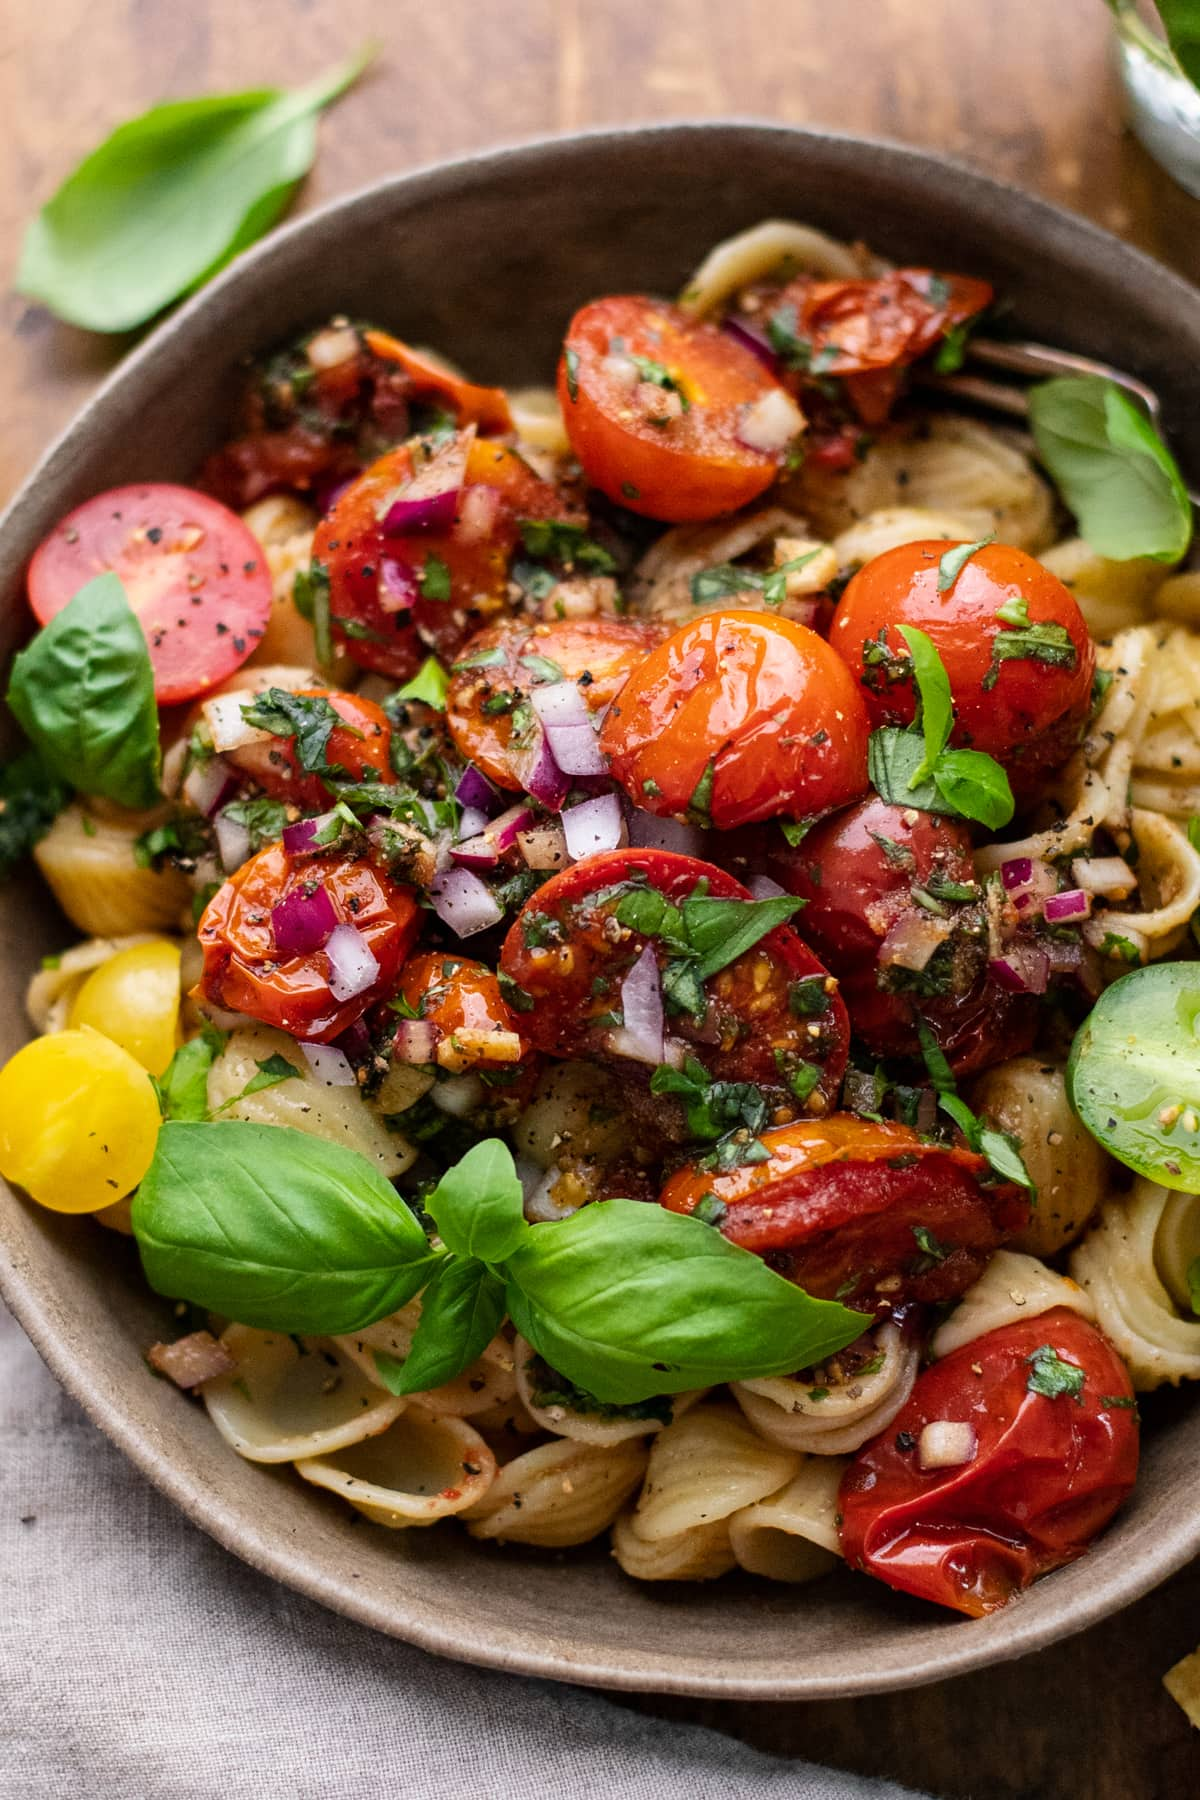 close up of bruschetta tomatoes over pasta with fresh herbs over top.